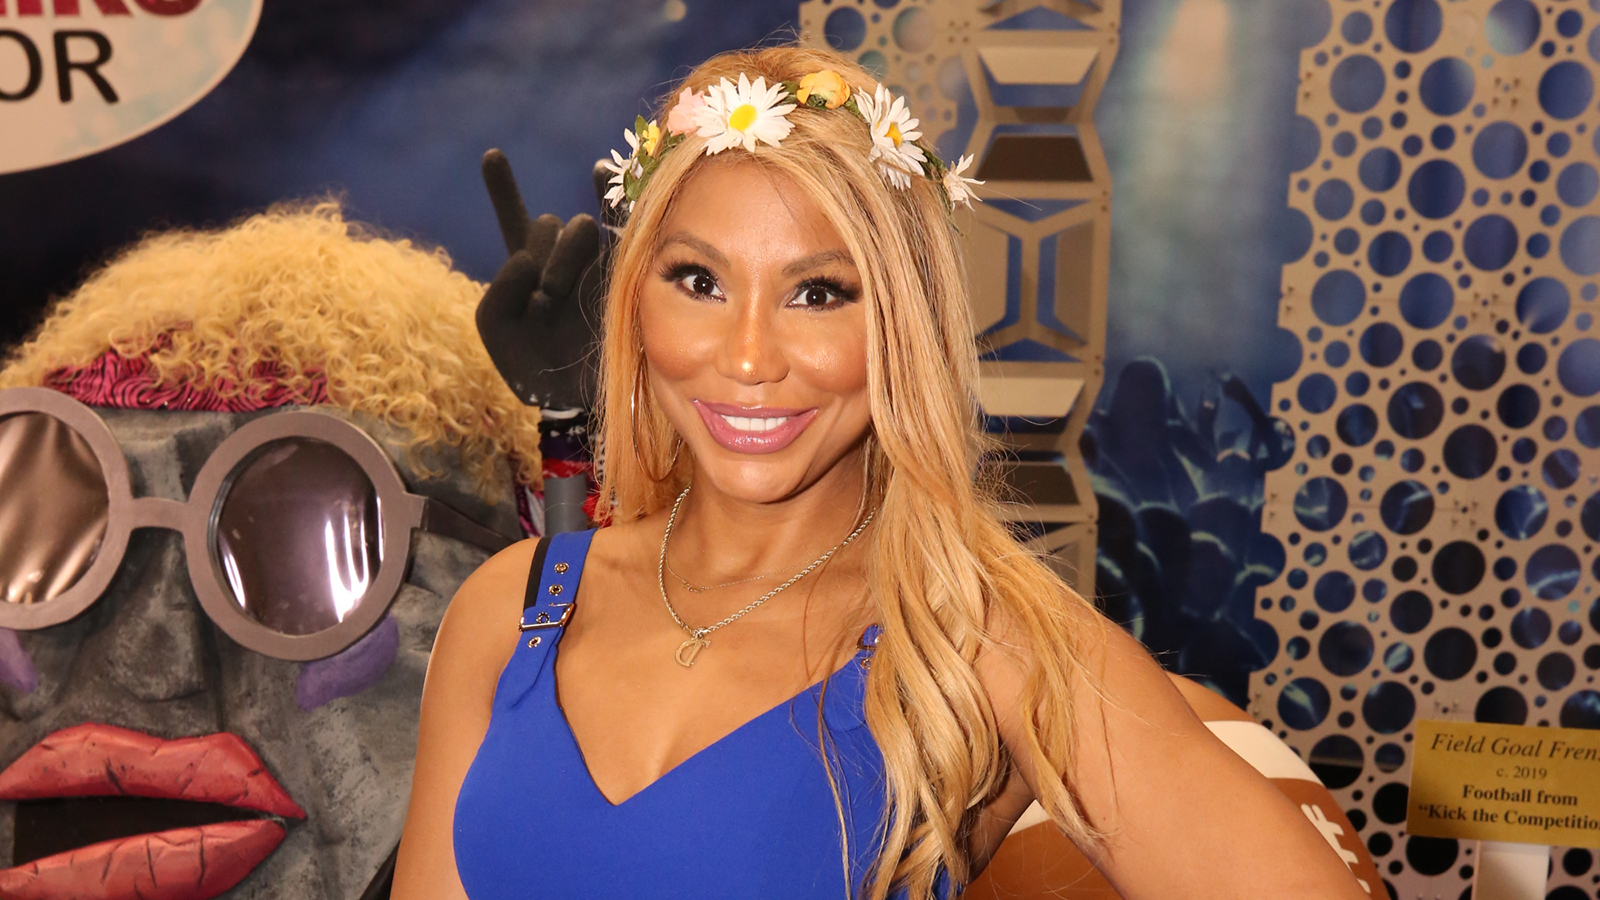 Tamar Braxton breaks silence to thank supporters for their prayers